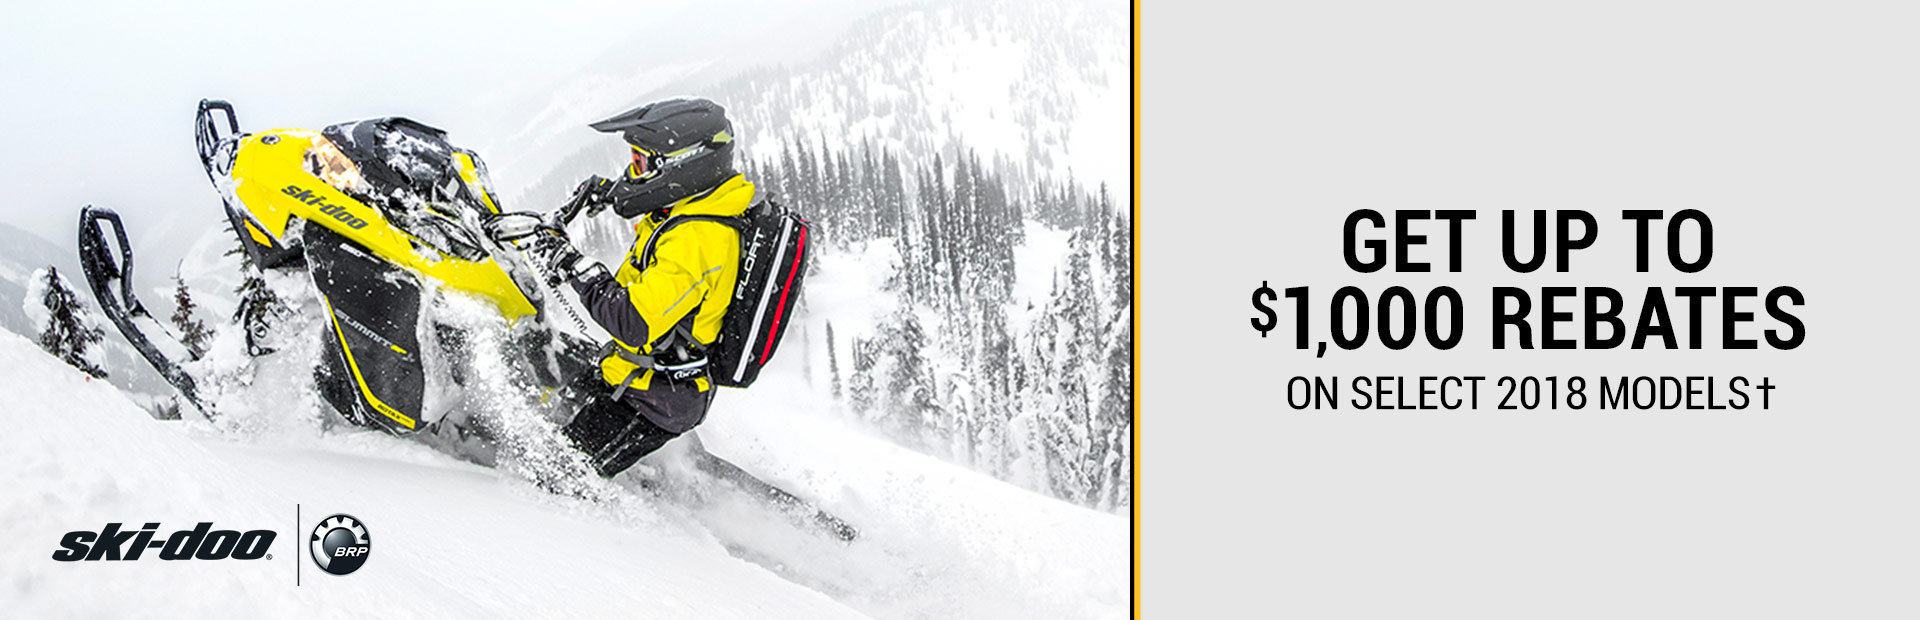 Ski-Doo: Get Up To $1,000 Rebates On Select 2018 Models